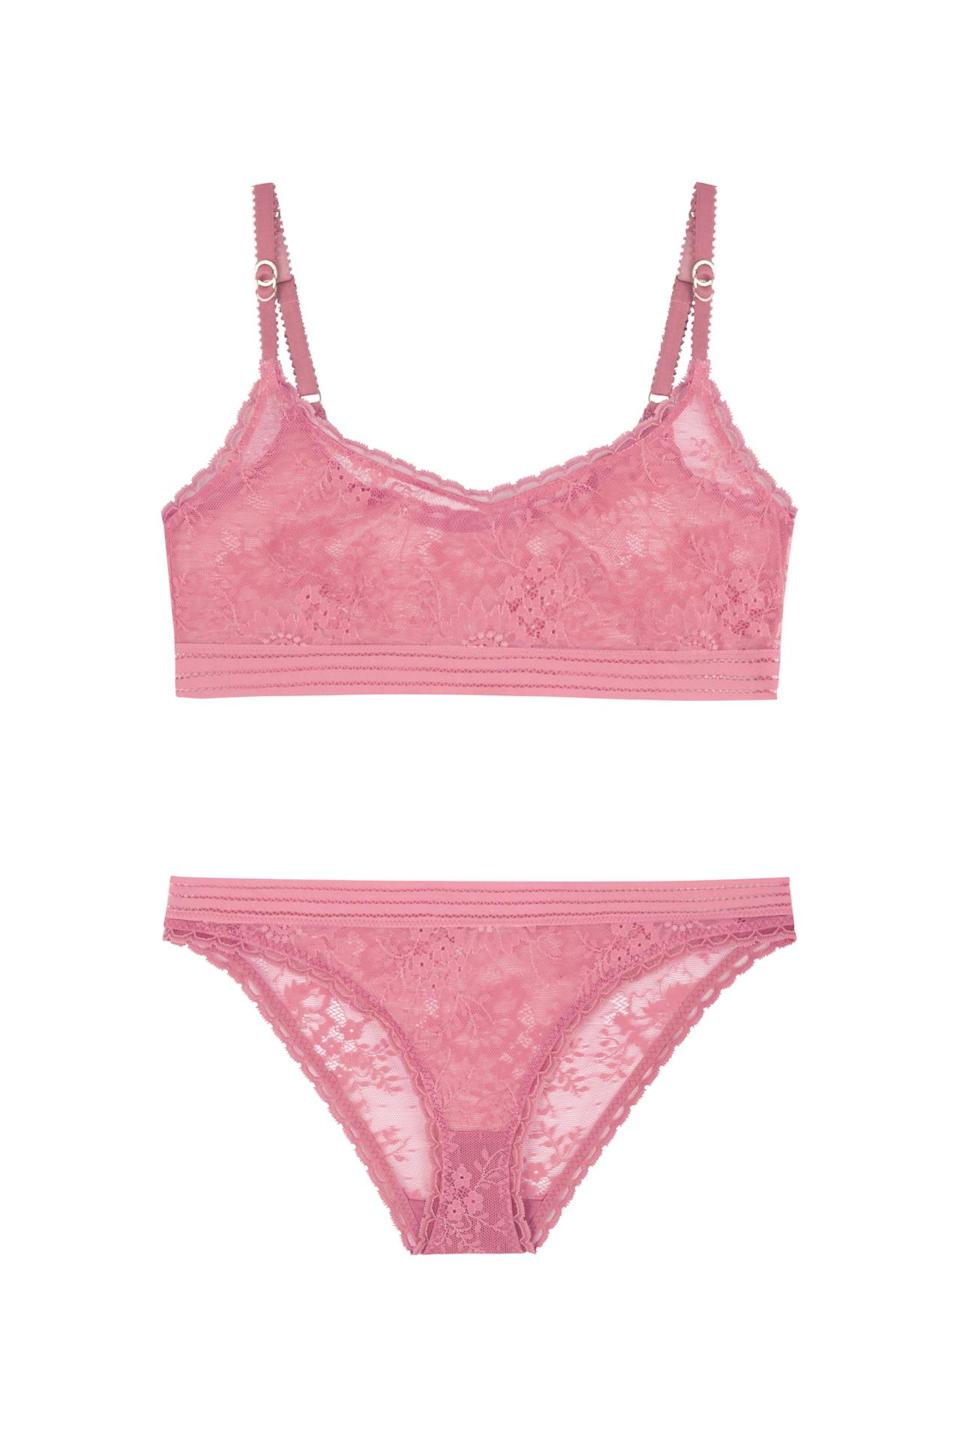 """<p>Stella Mccartney is making sure we all look pretty in pink this October by creating this beautiful pastel underwear set. A percentage of the proceeds will be going to a number of charities that help fight cancer. </p><p><i><a rel=""""nofollow noopener"""" href=""""http://www.stellamccartney.com/gb/stella-mccartney/bra_cod48176280vw.html#section=lingerie_bras"""" target=""""_blank"""" data-ylk=""""slk:[Stella McCartney, bra £25,"""" class=""""link rapid-noclick-resp"""">[Stella McCartney, bra £25,</a></i> <i><a rel=""""nofollow noopener"""" href=""""http://www.stellamccartney.com/gb/stella-mccartney/briefs_cod48176281td.html#section=lingerie_briefs"""" target=""""_blank"""" data-ylk=""""slk:briefs, £42]"""" class=""""link rapid-noclick-resp"""">briefs, £42]</a></i></p>"""